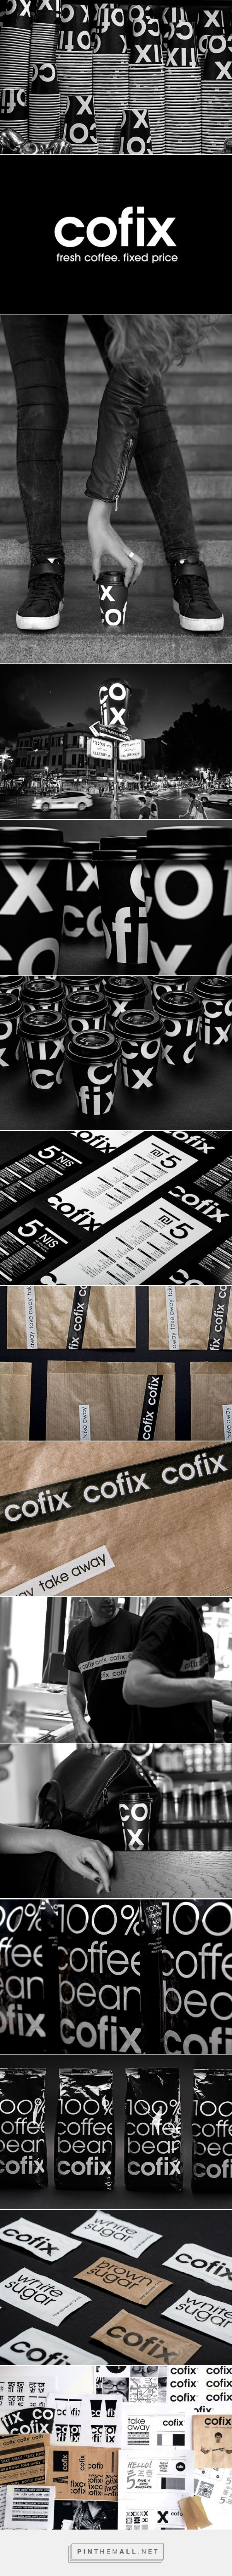 COFIX Coffee Packaging designed by Kapsoola​ - http://www.packagingoftheworld.com/2015/10/cofix.html